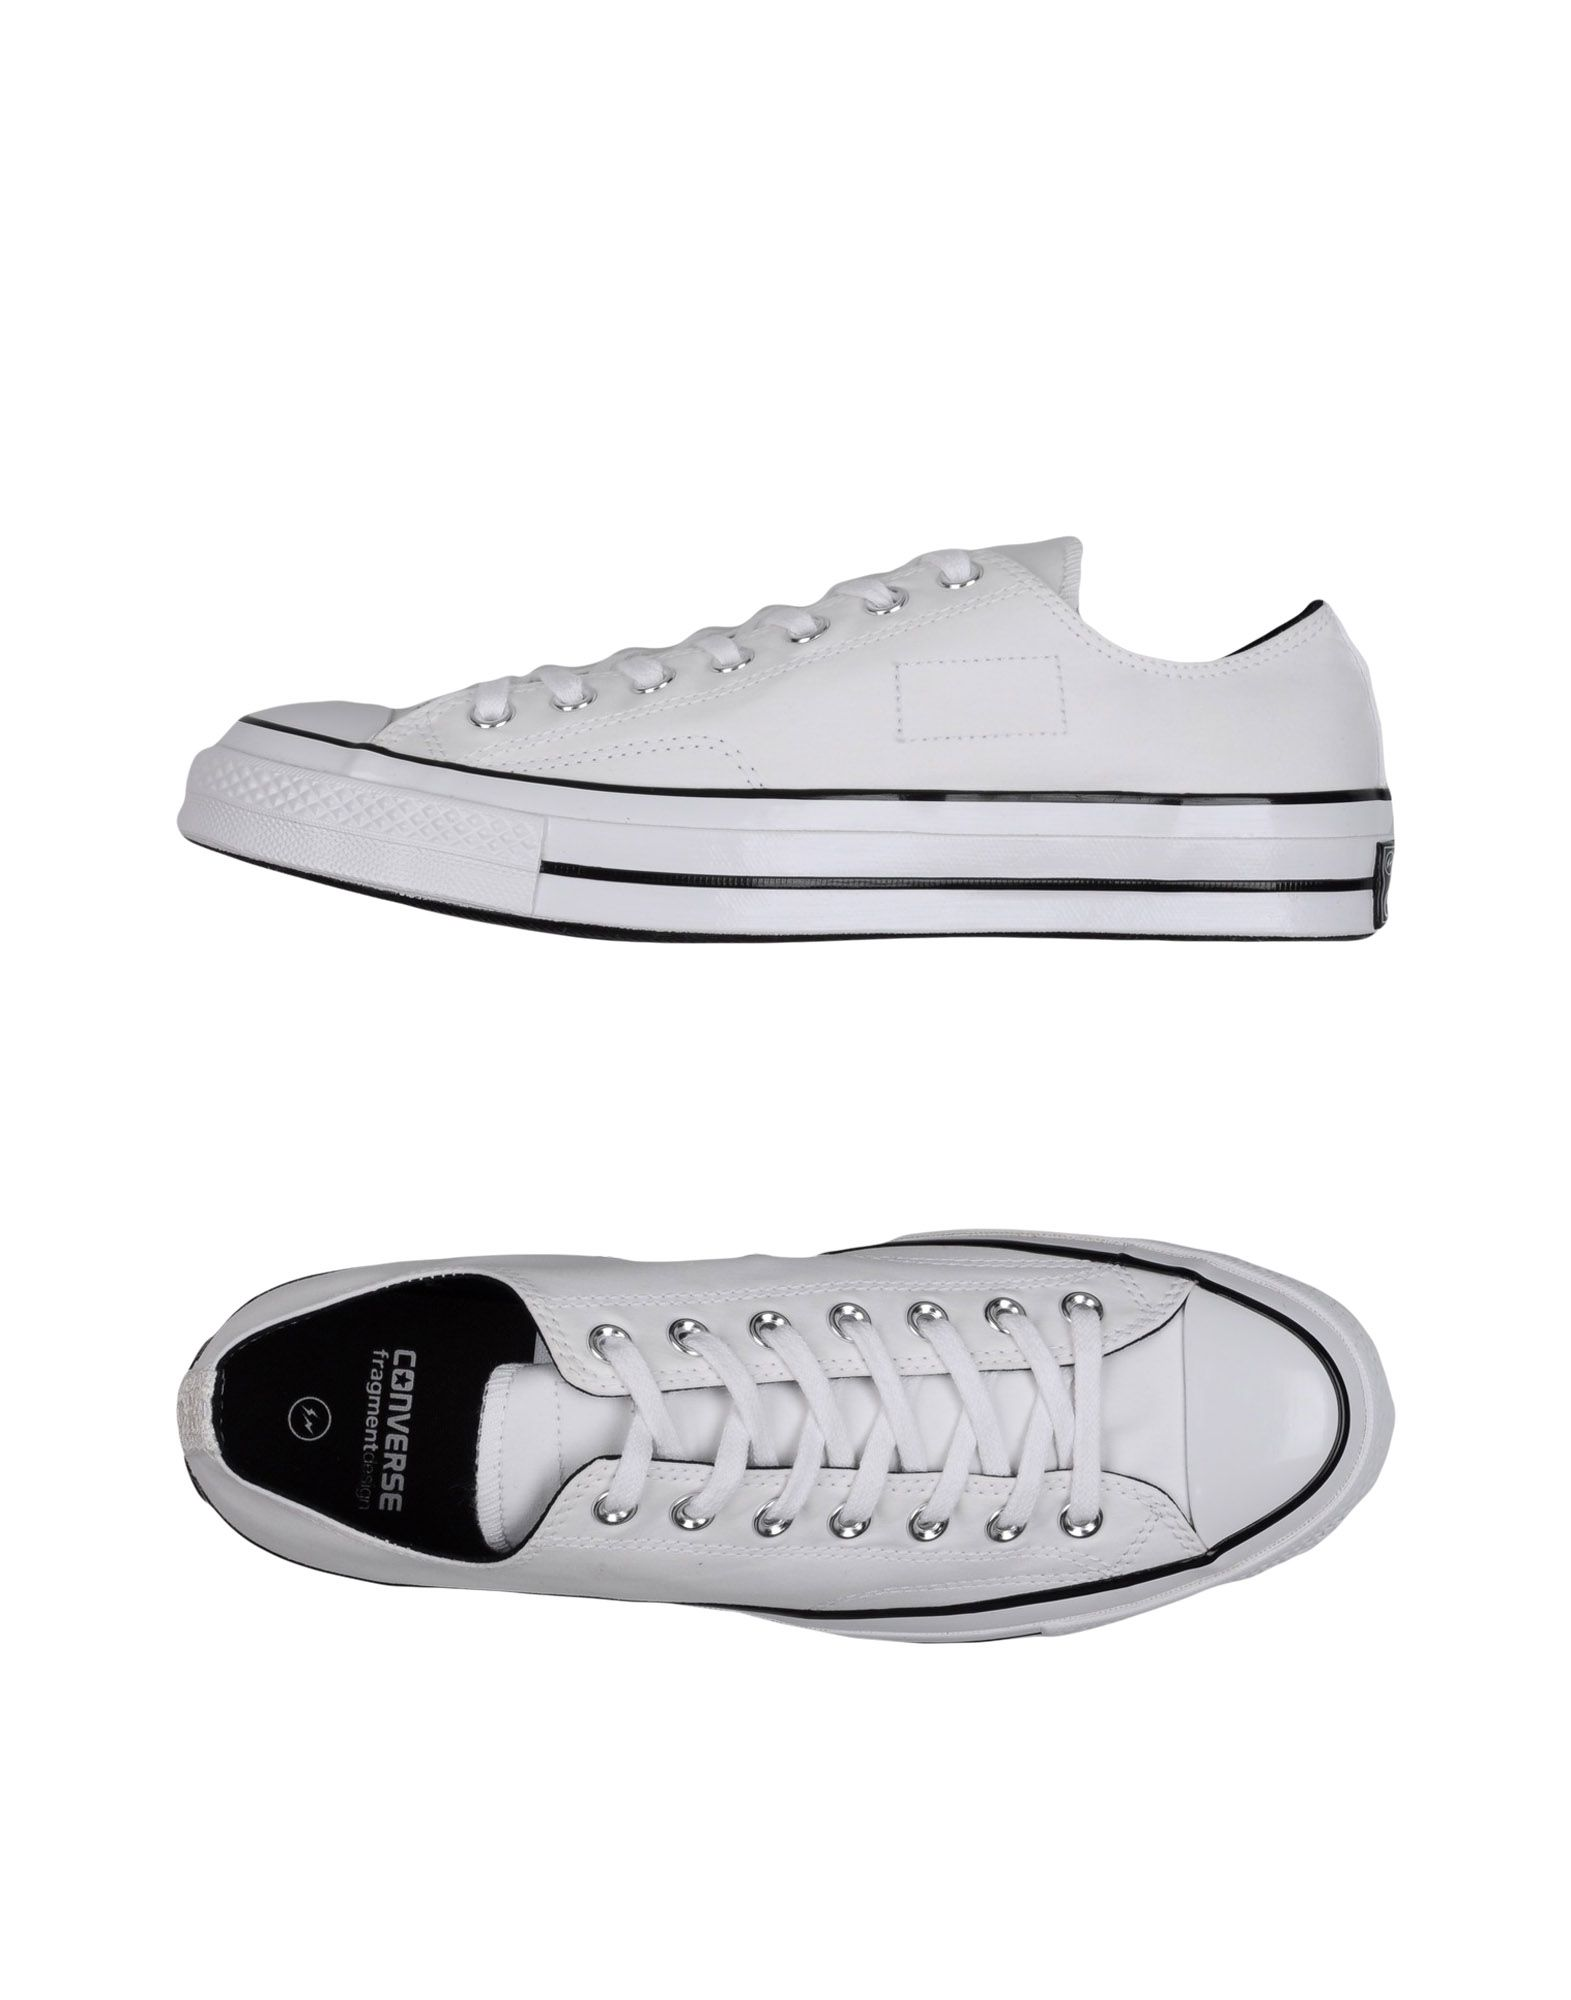 Sneakers Converse All Star Chuck Taylor Ii Homme - Sneakers Converse All Star Chuck Taylor Ii sur